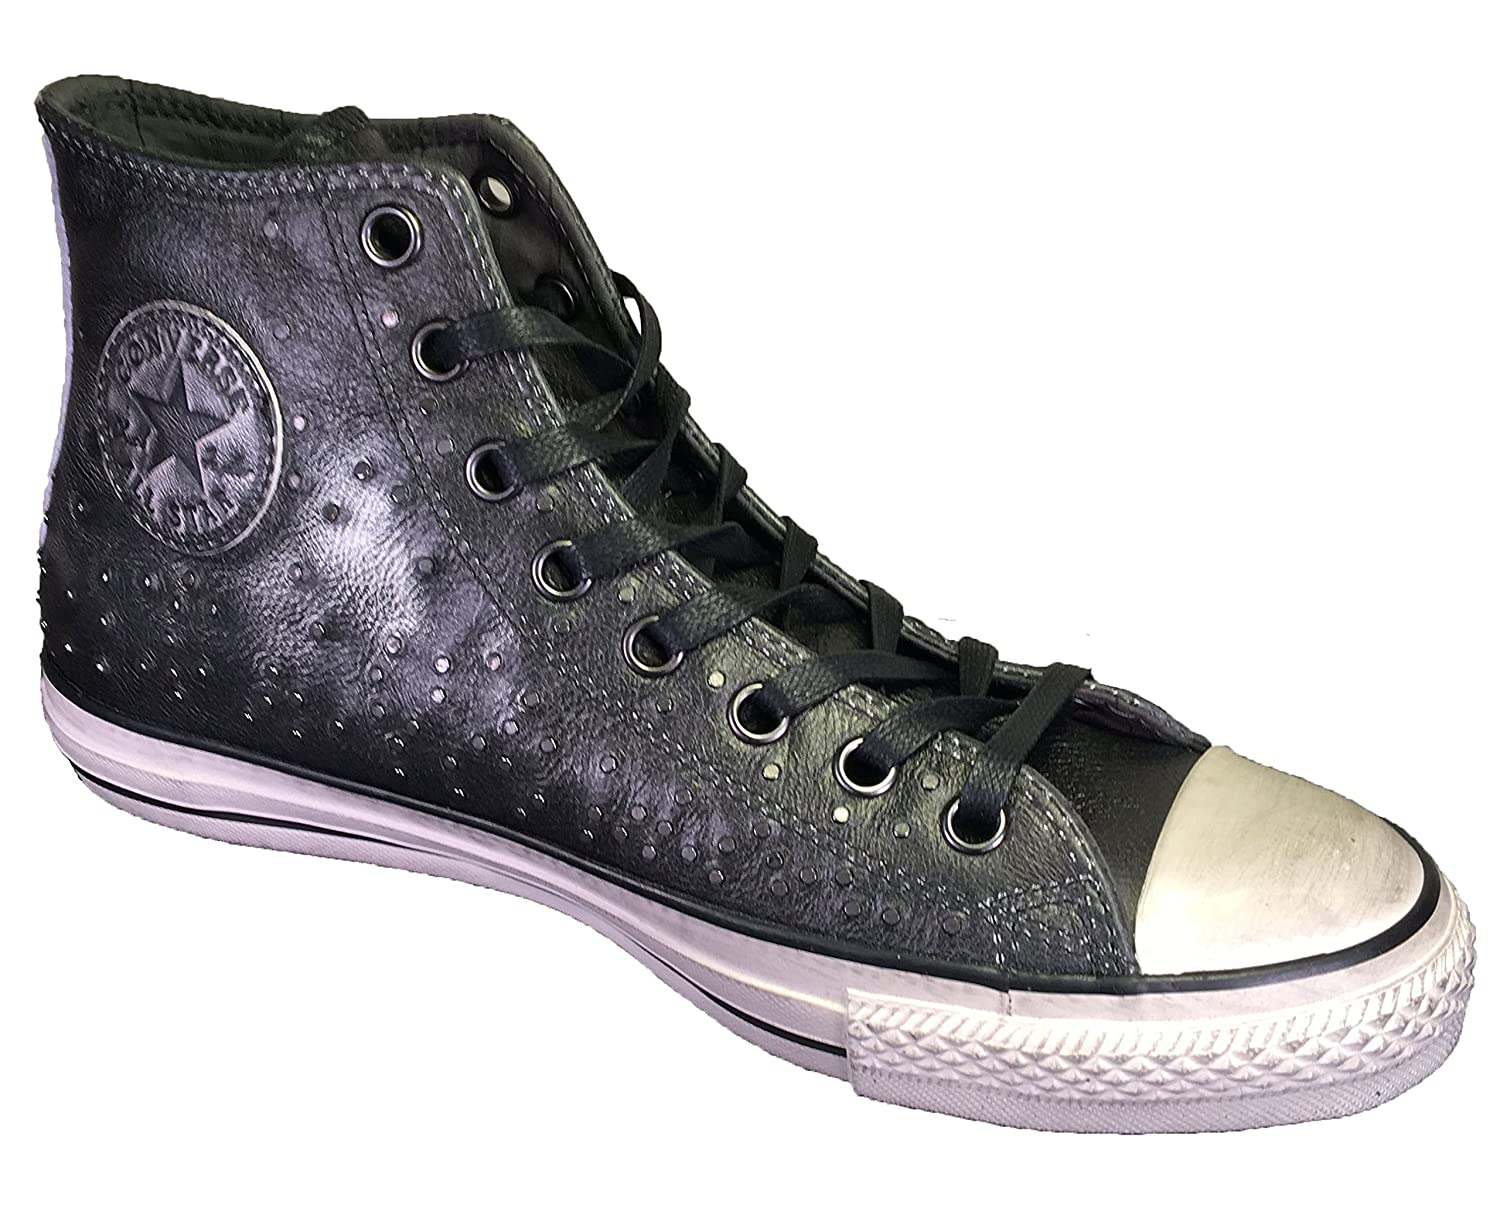 8057f41e0fb7 ... where to buy converse by john varvatos distressed studded leather hi  sneaker silver 3b54f afb6a